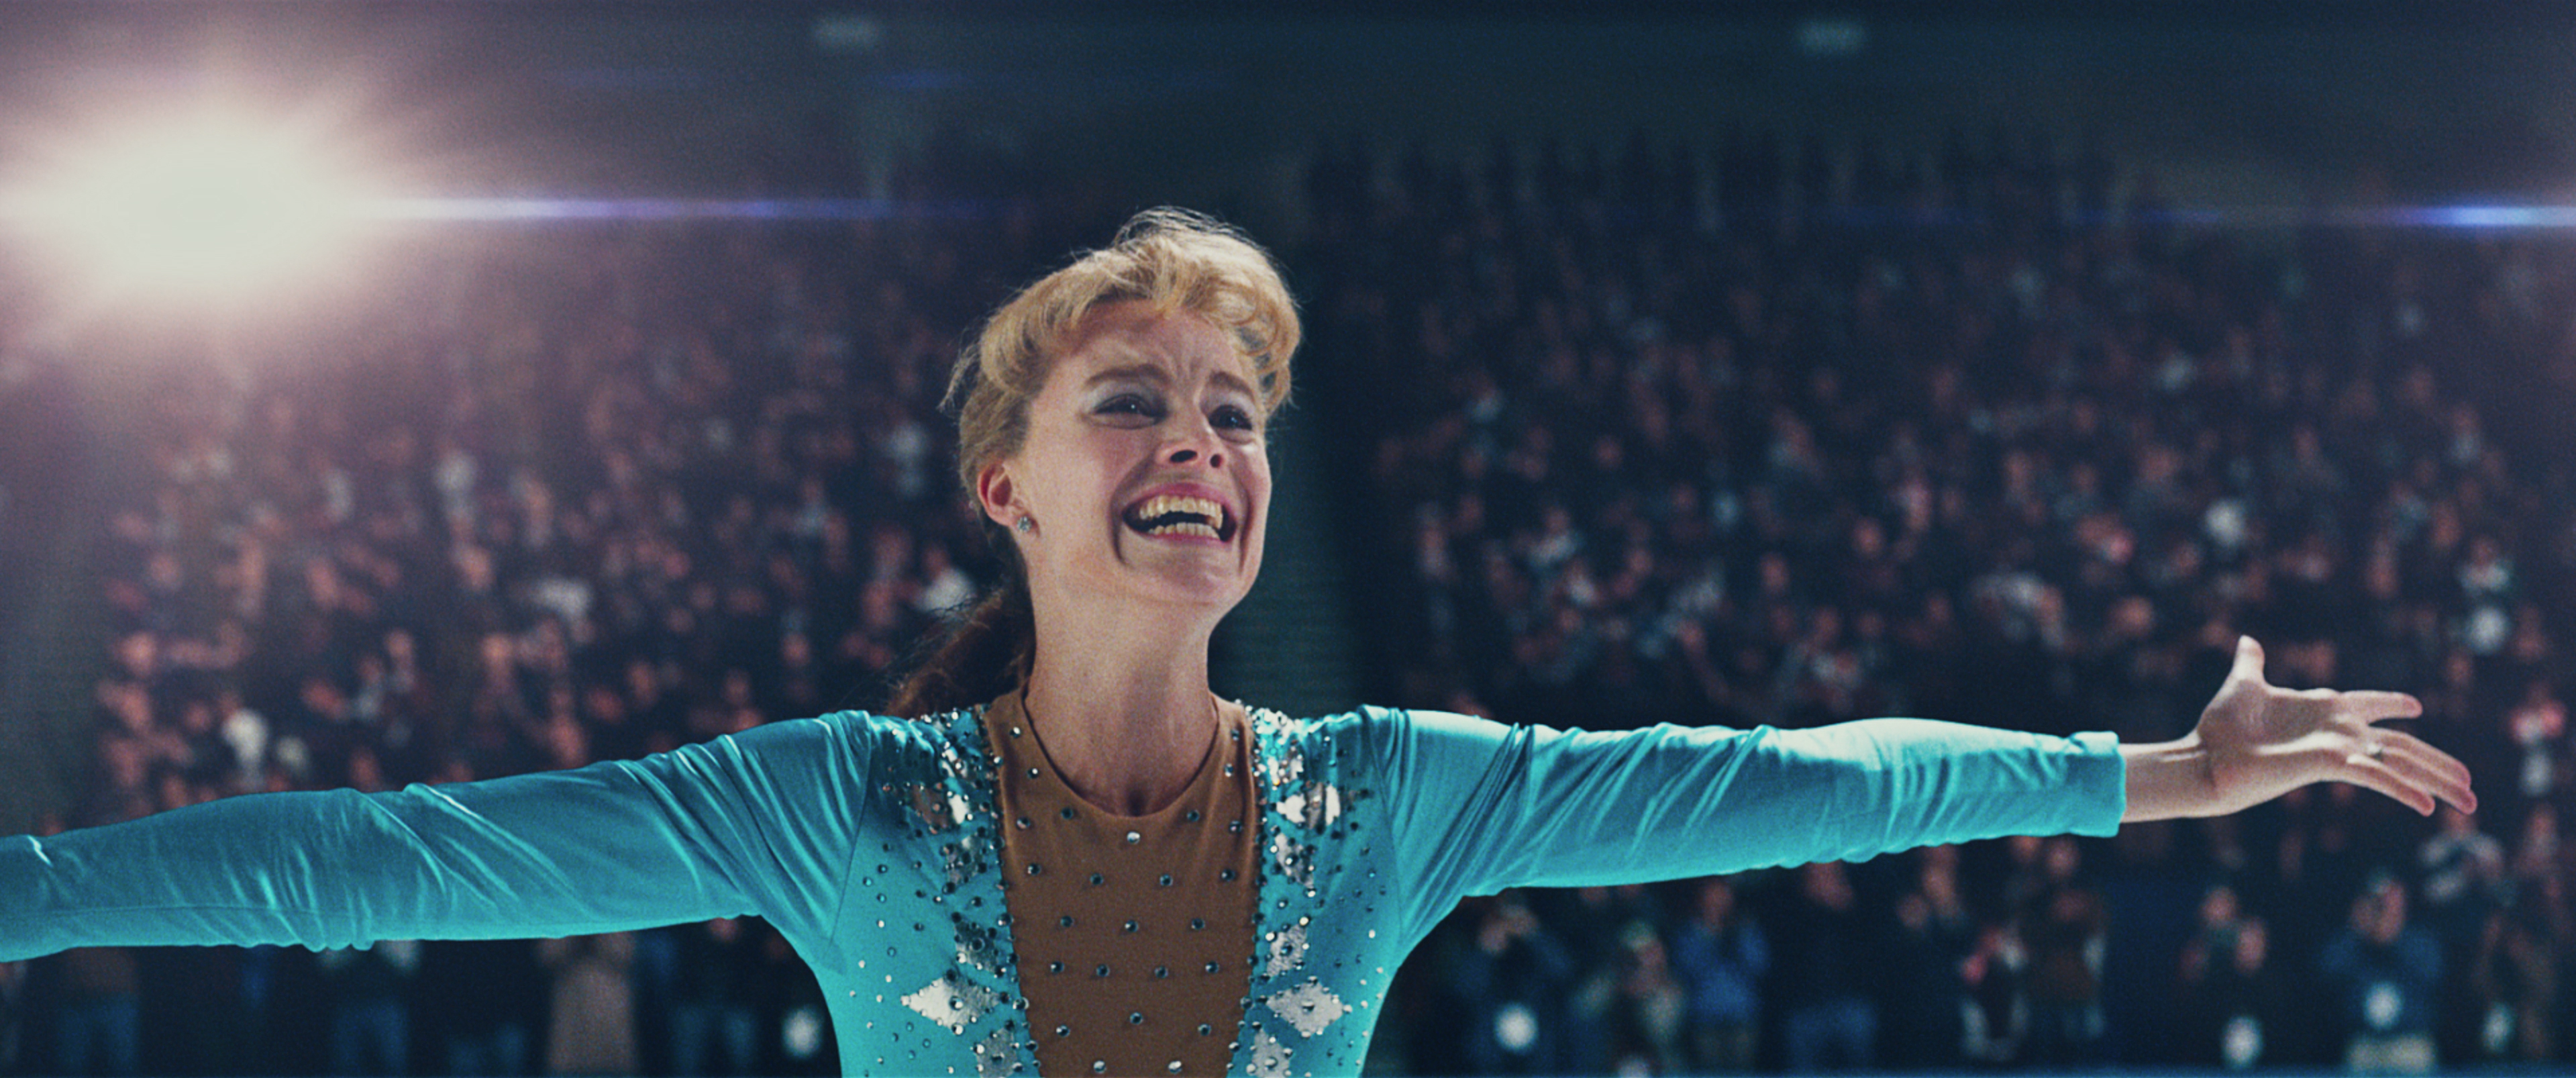 1- Tonya Harding (Margot Robbie) after landing the triple axel in I, TONYA, courtesy of NEON and 30WEST